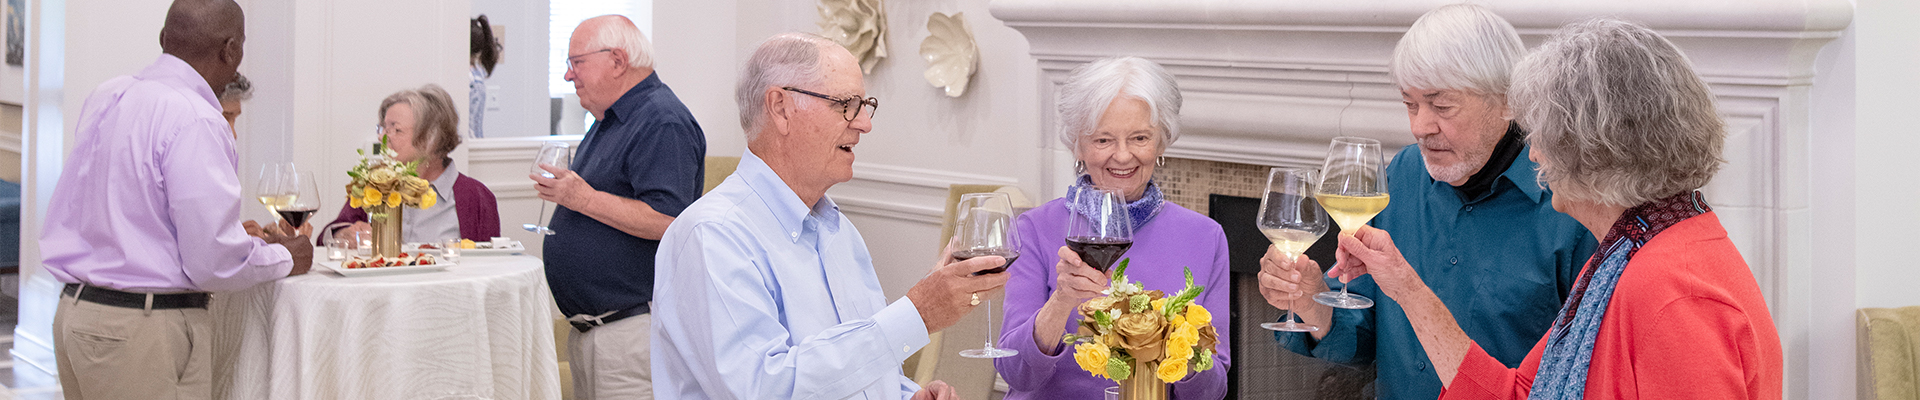 seniors at a happy hour enjoying beverages and appetizers